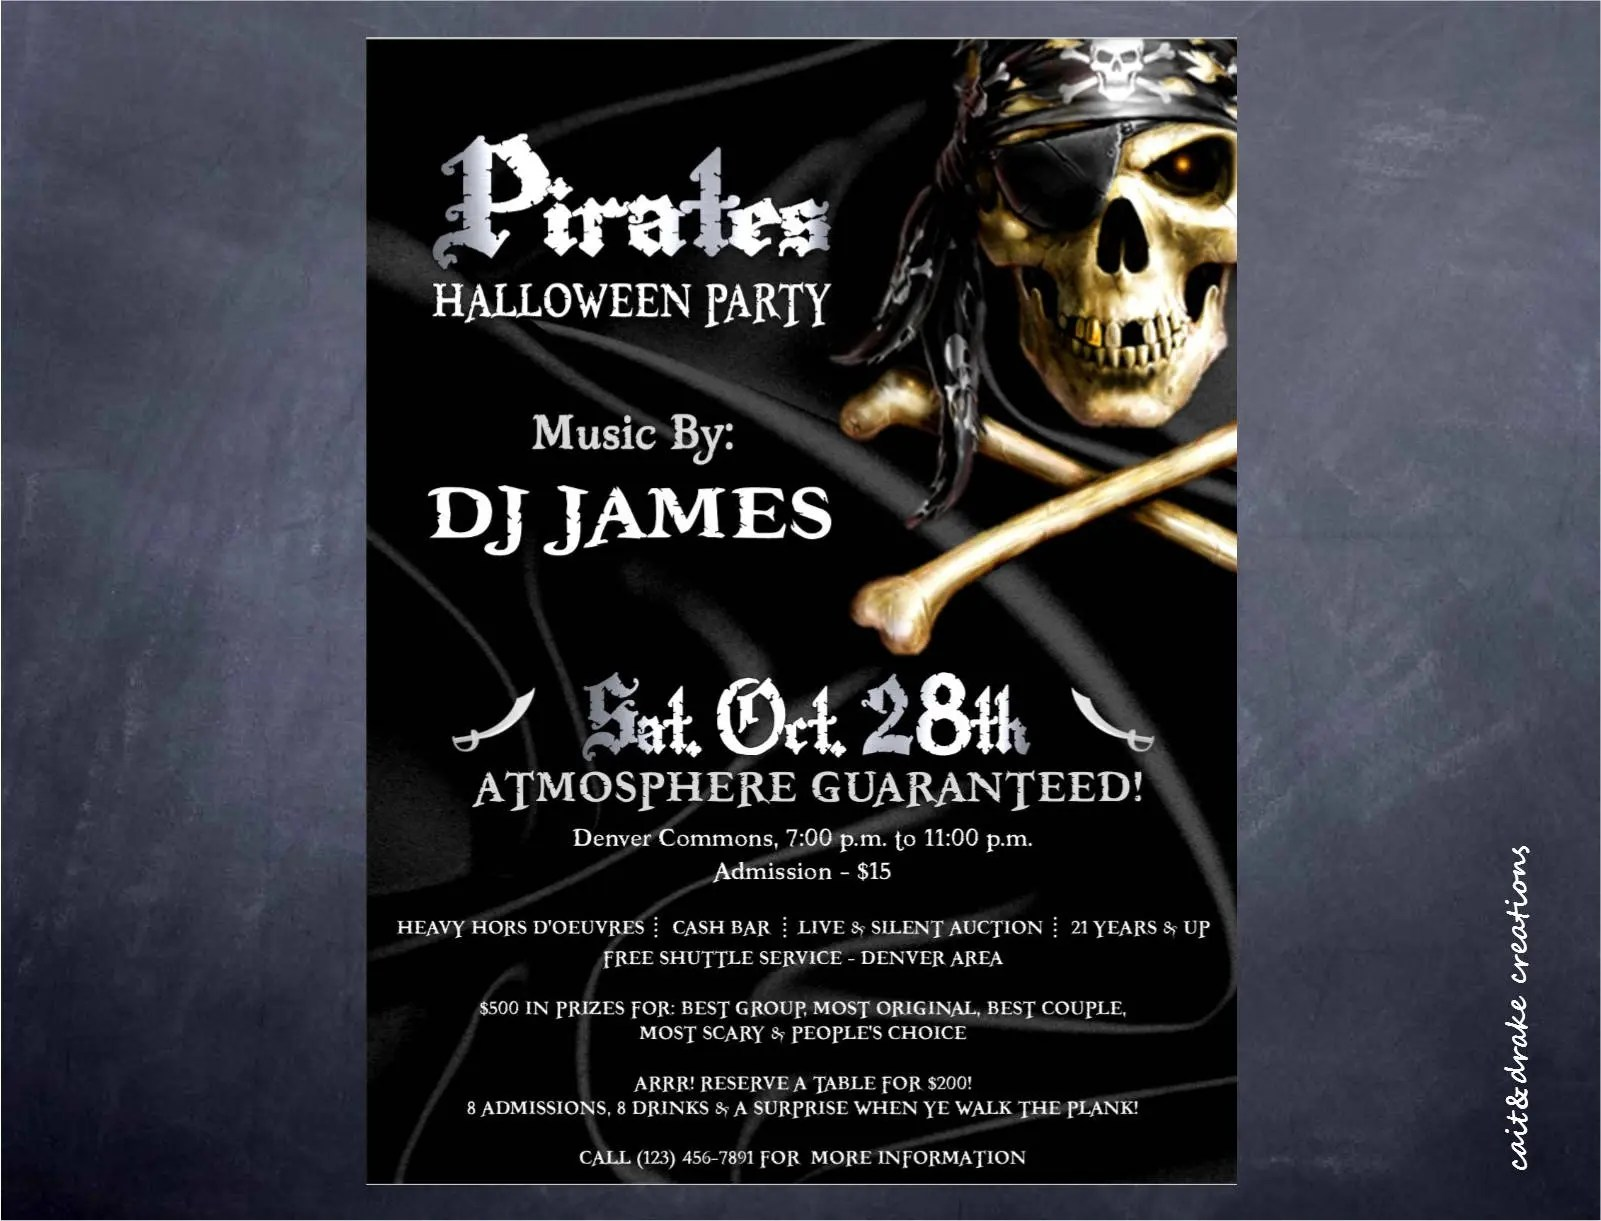 Pirate Halloween Party Costume Contest Flyer Digital Print Etsy